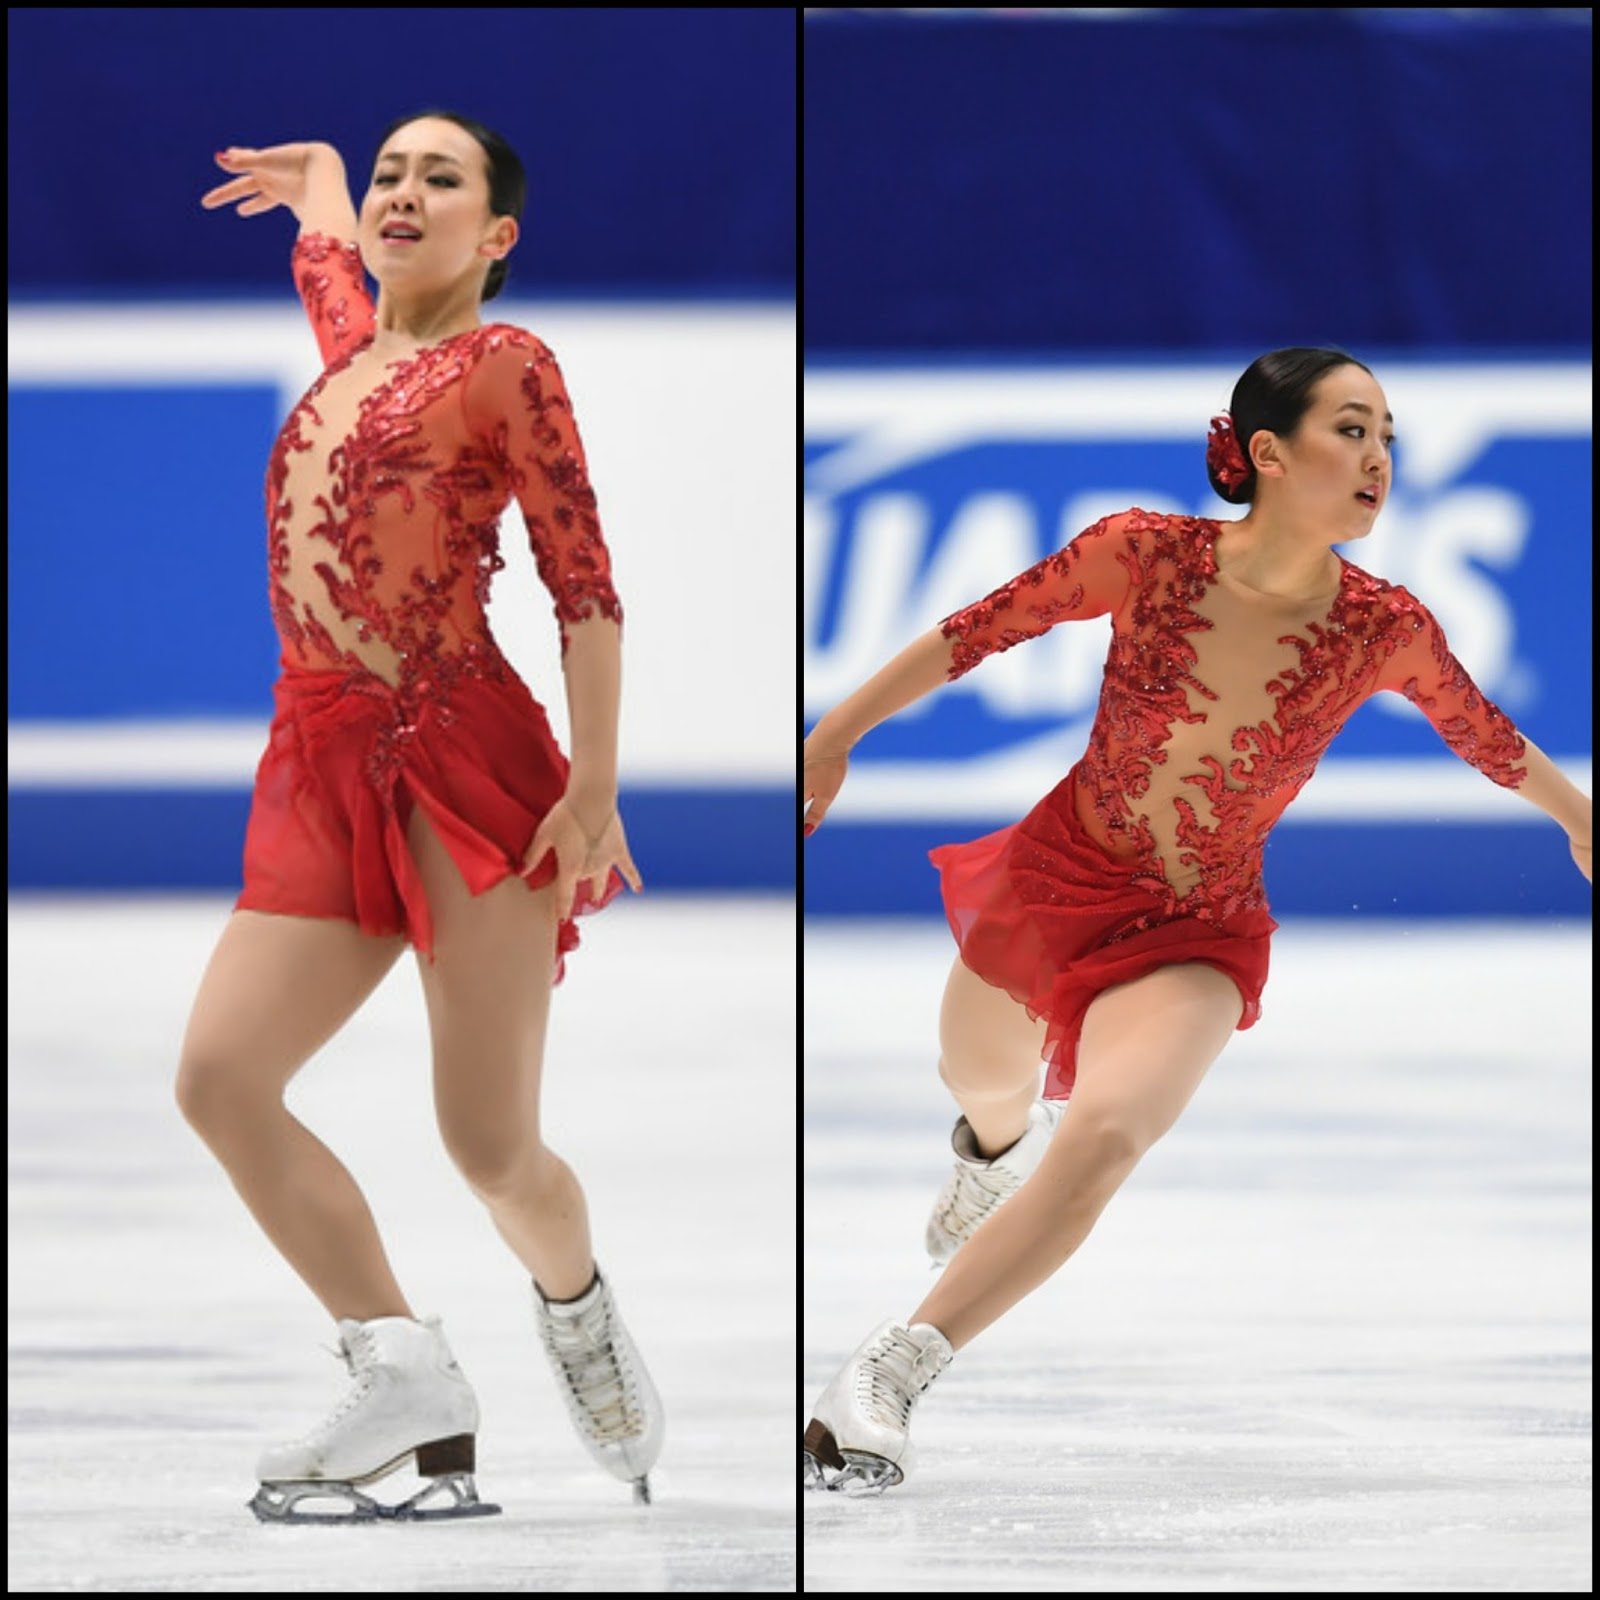 Discussion on this topic: Selina Jen, mao-asada/